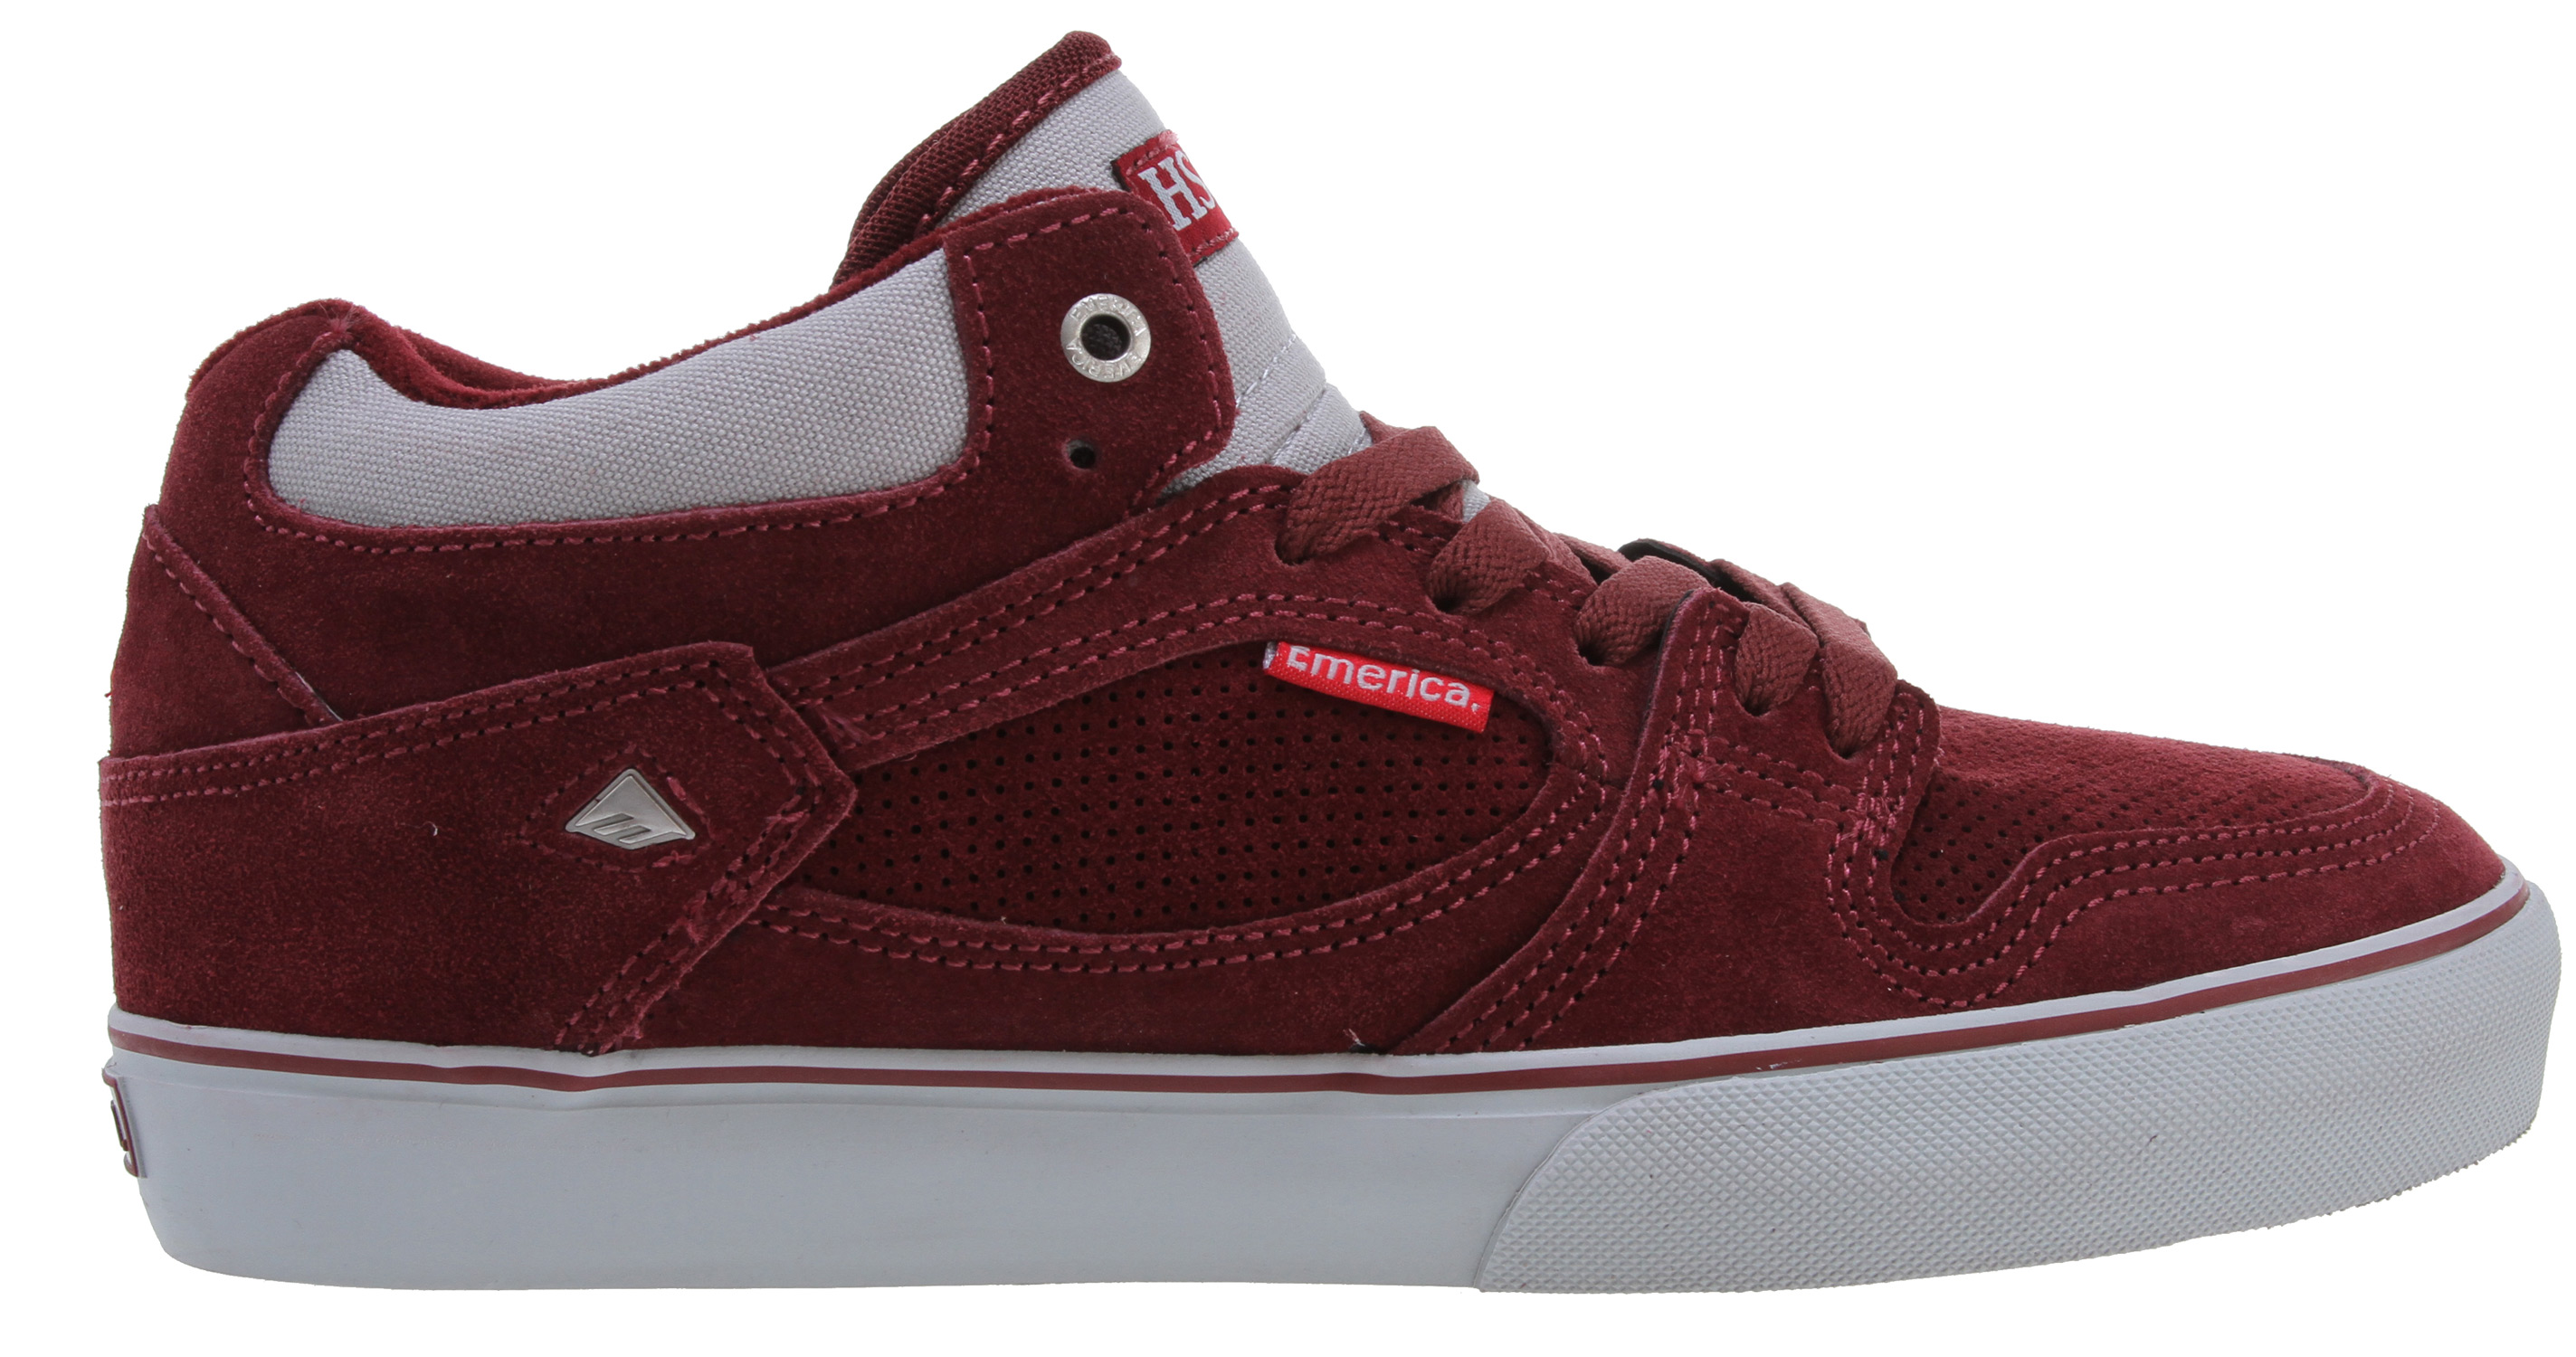 Skateboard Key Features of the Emerica Hsu Skate Shoes: Designed by Jerry Hsu Suede and canvas upper materials Mid-top for added ankle protection Thin padded tongue and collar Optional hidden lace flap Triple-stitched toe cap STI Foam STI PU Foam Lite level 3 footbed Vulcanized 400 NBS natural gum outsole - $49.95